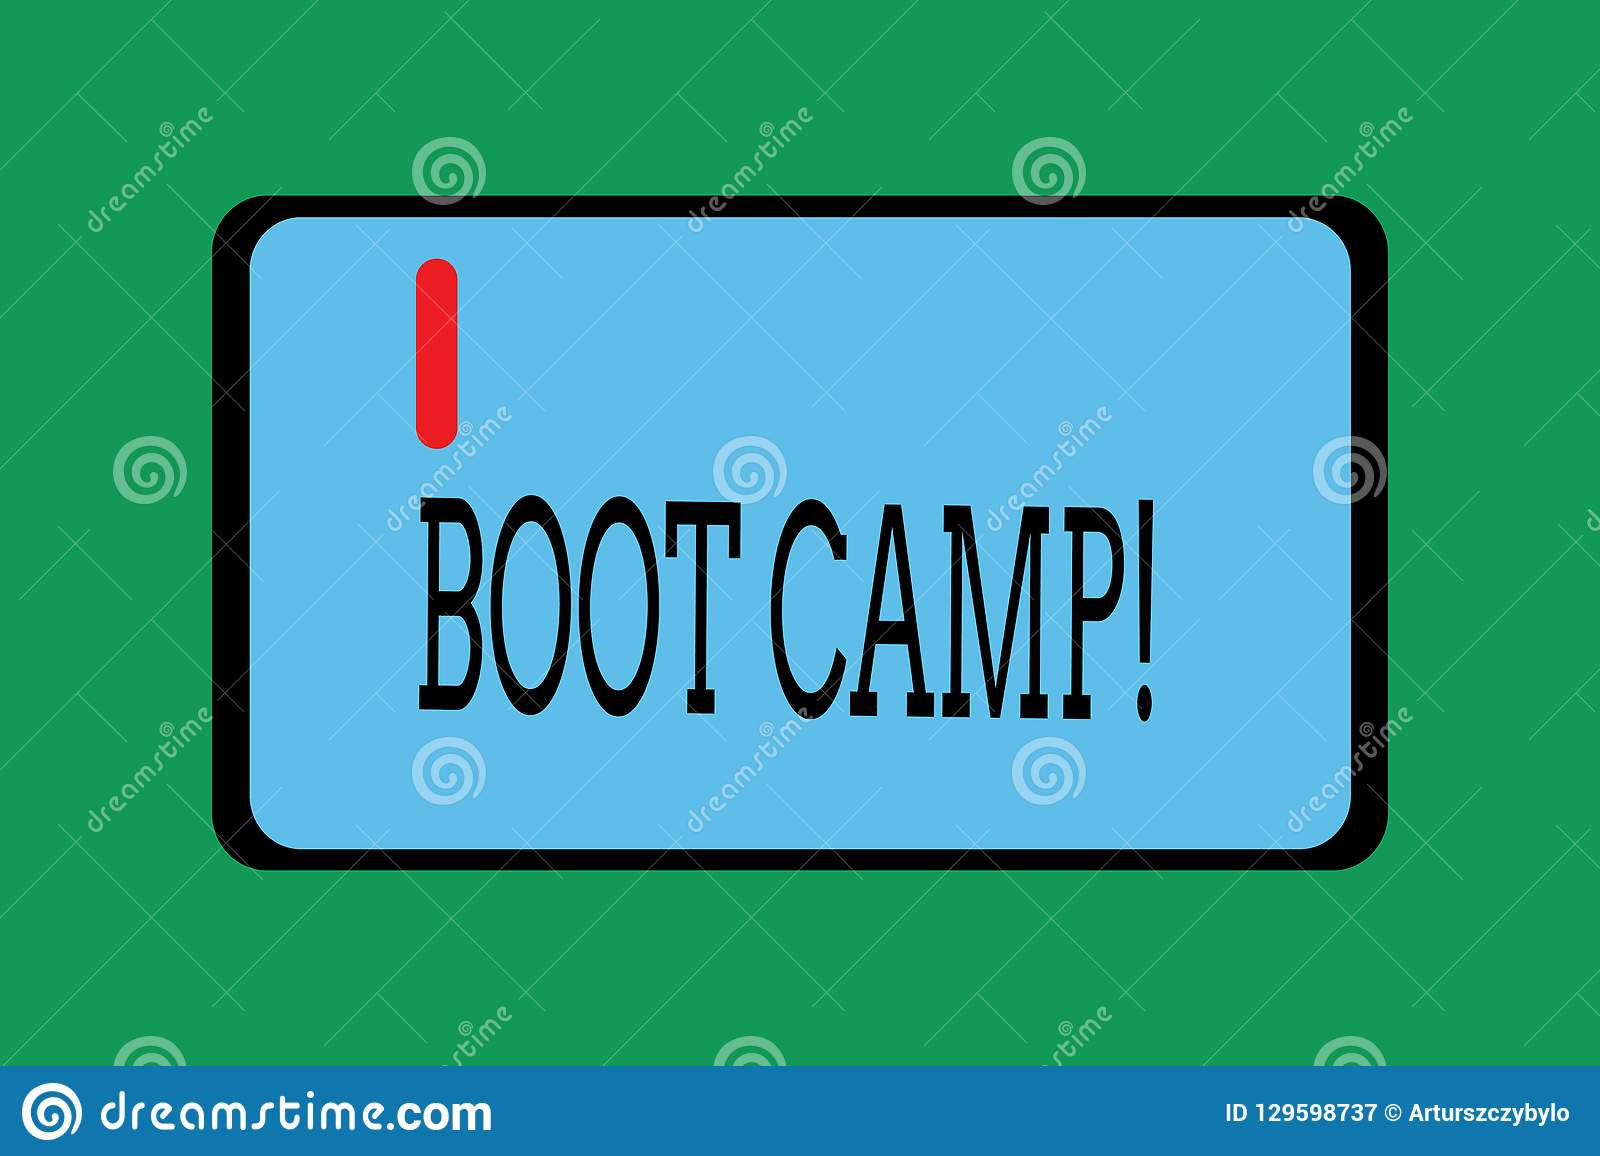 military fitness boot camp challenge